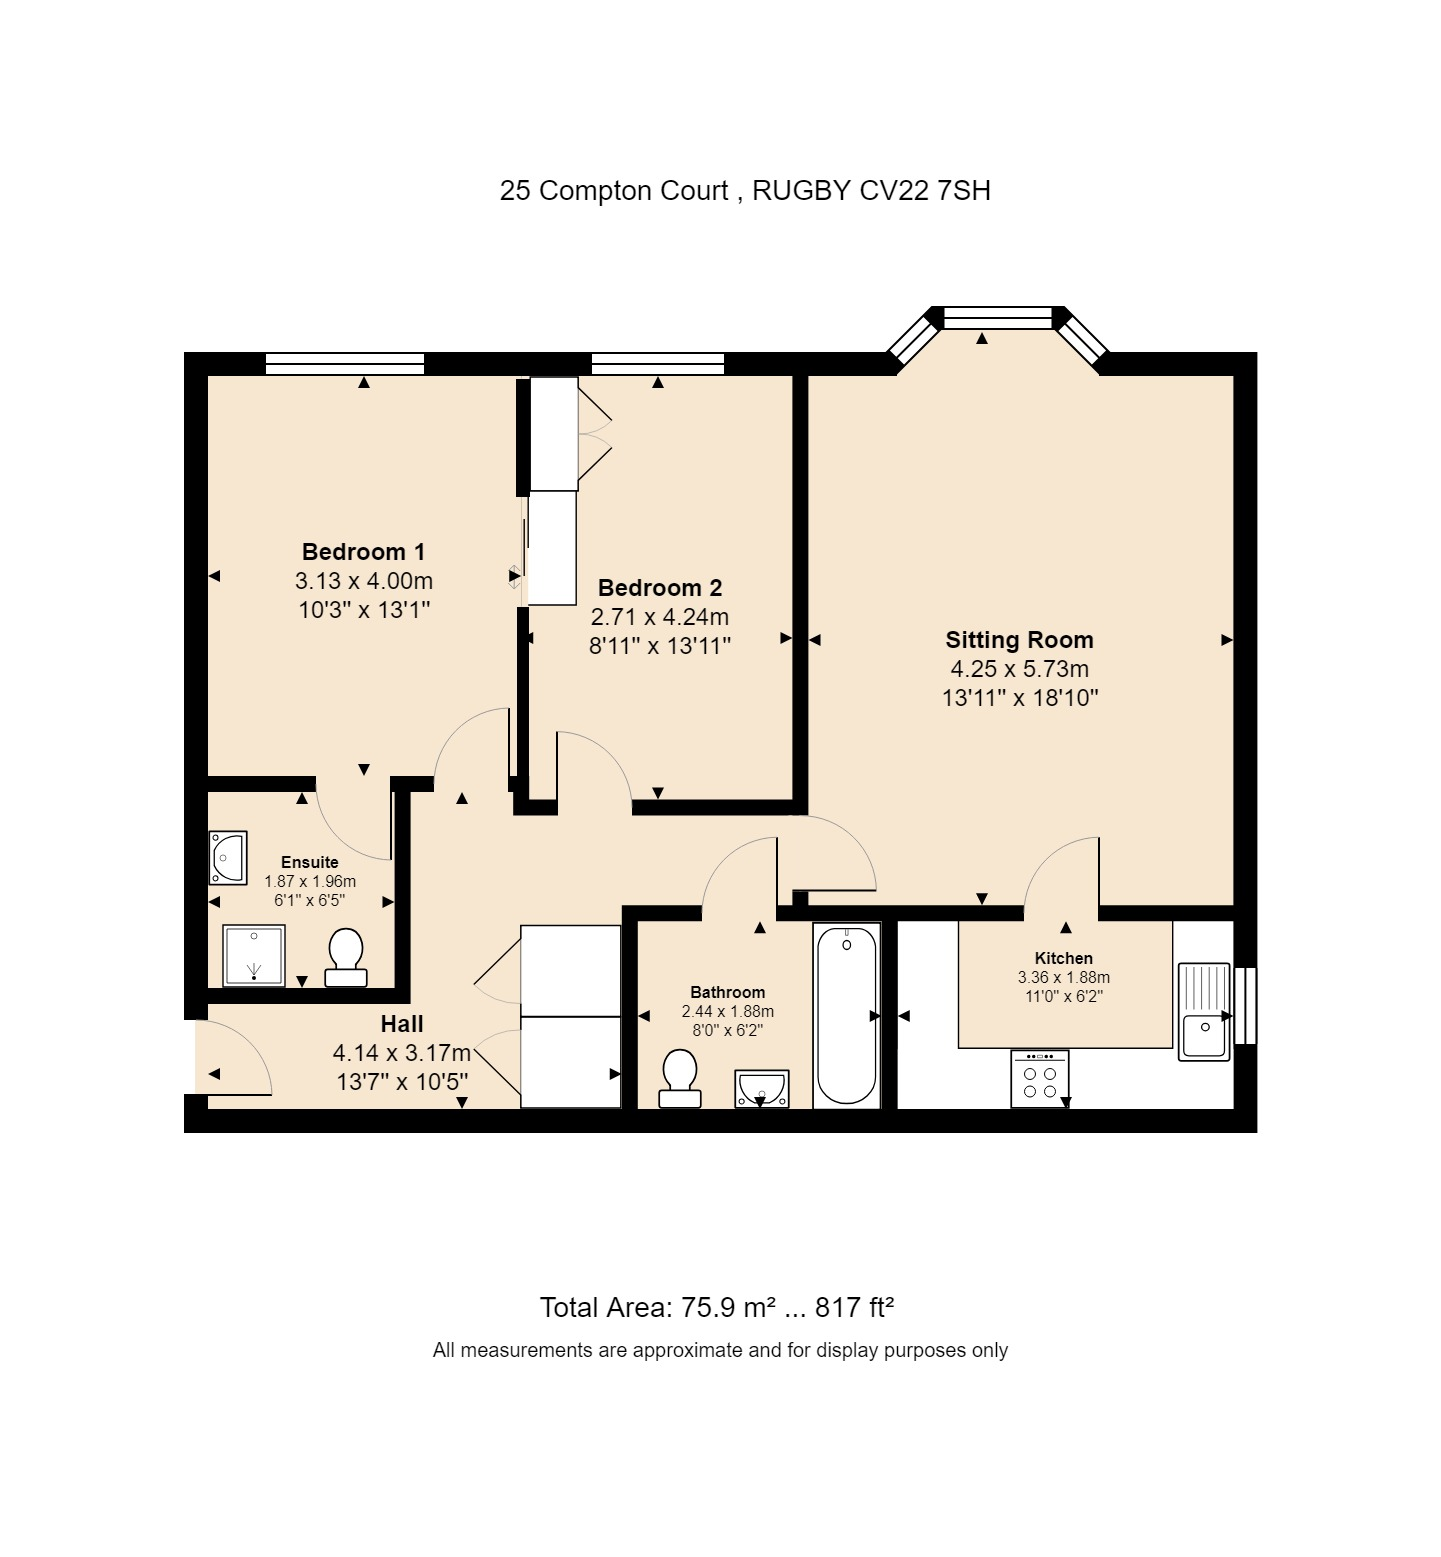 25 Compton Court Floorplan